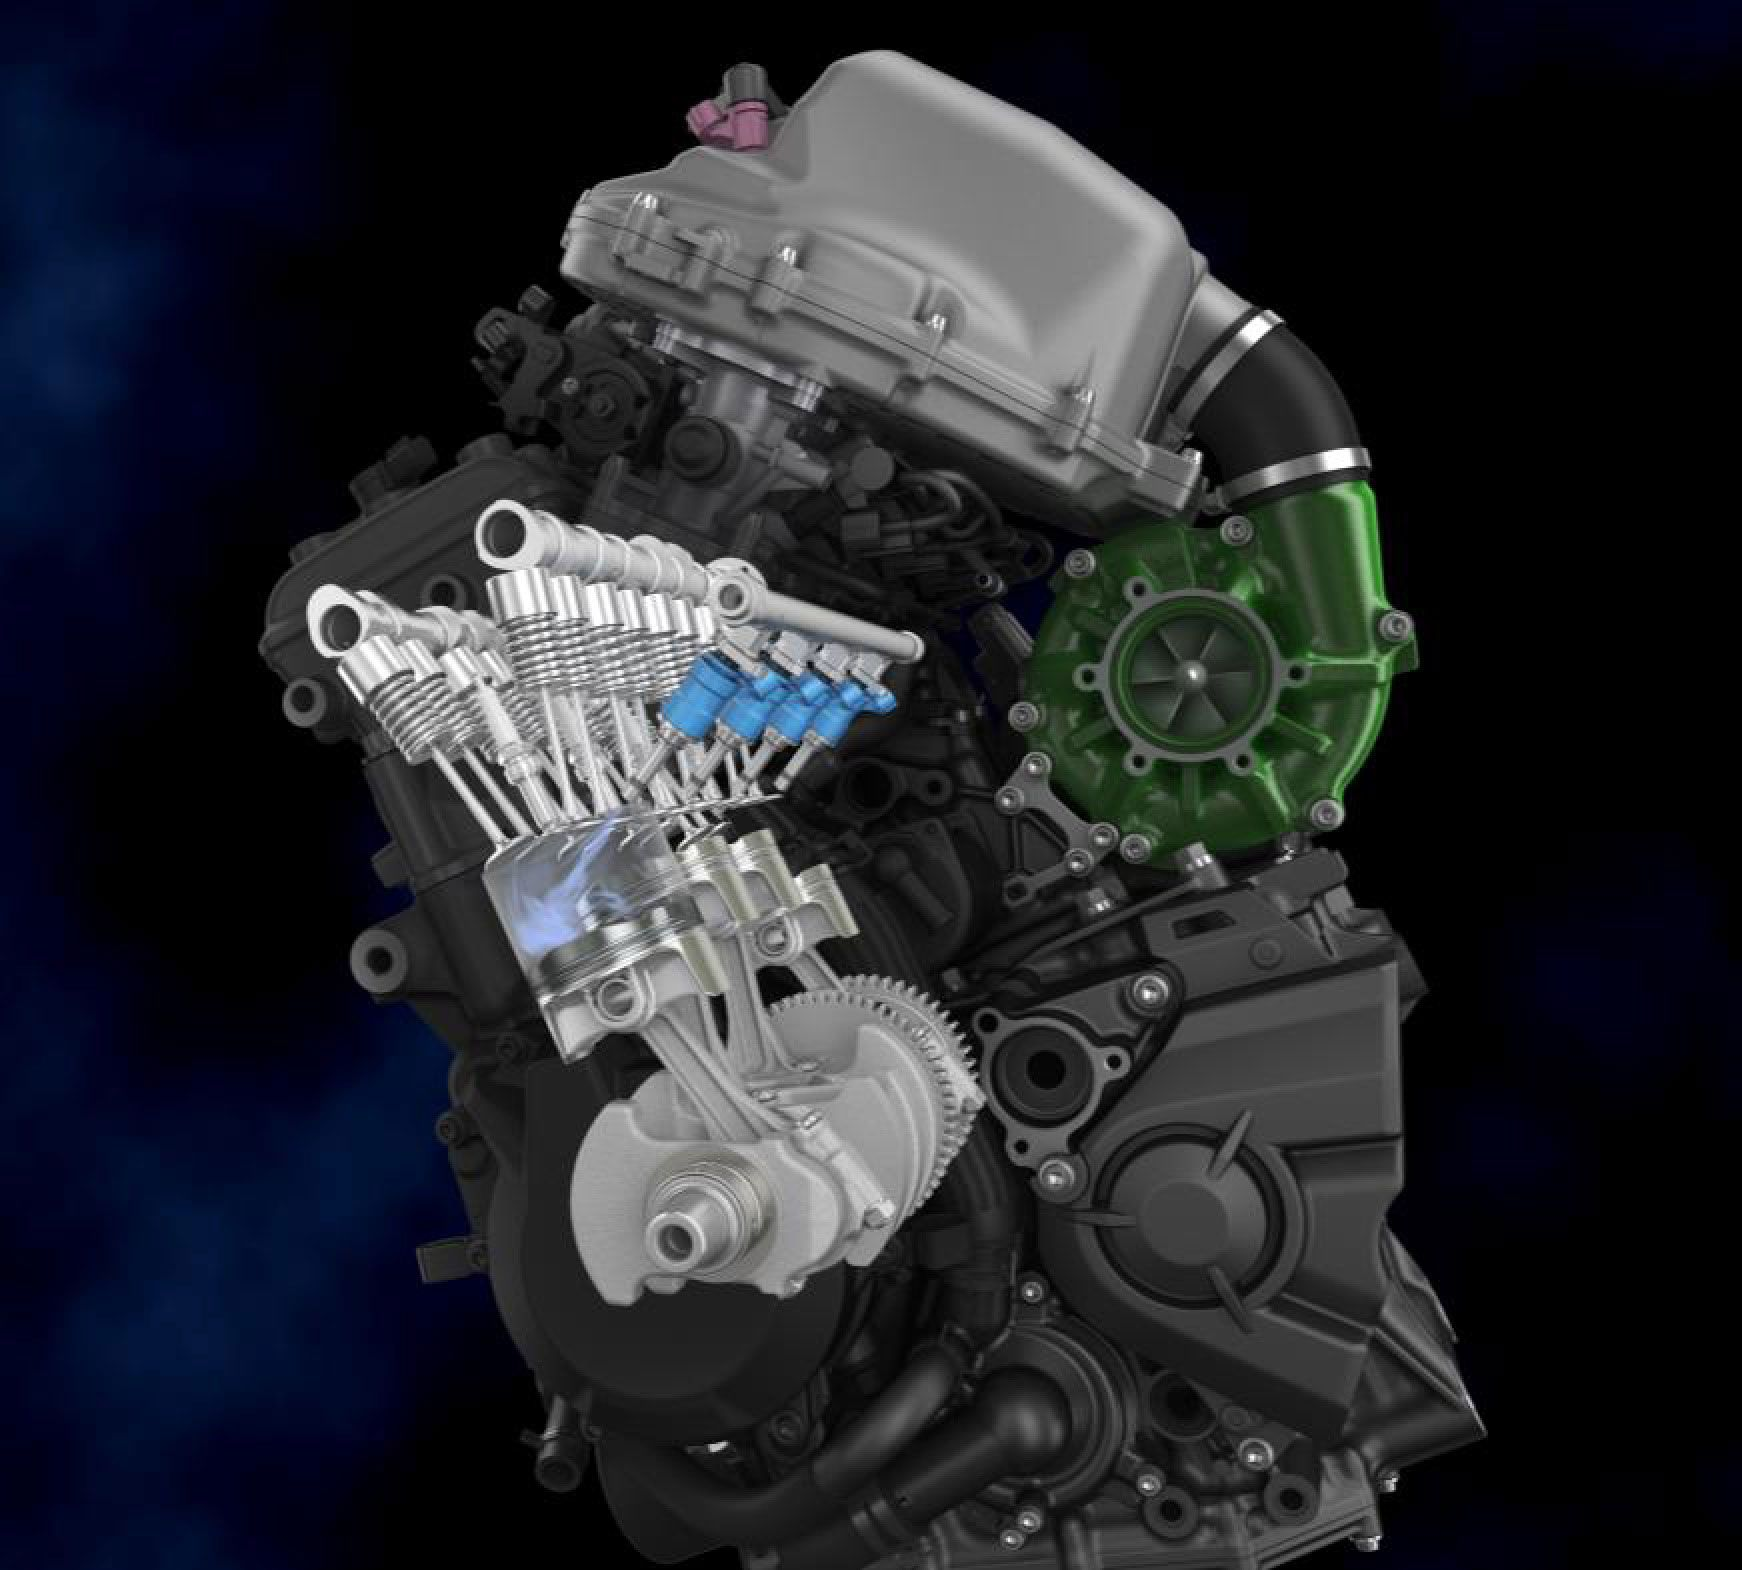 Direct injection helps reduce emissions, while port fuel injection gives more time for fuel to mix properly.